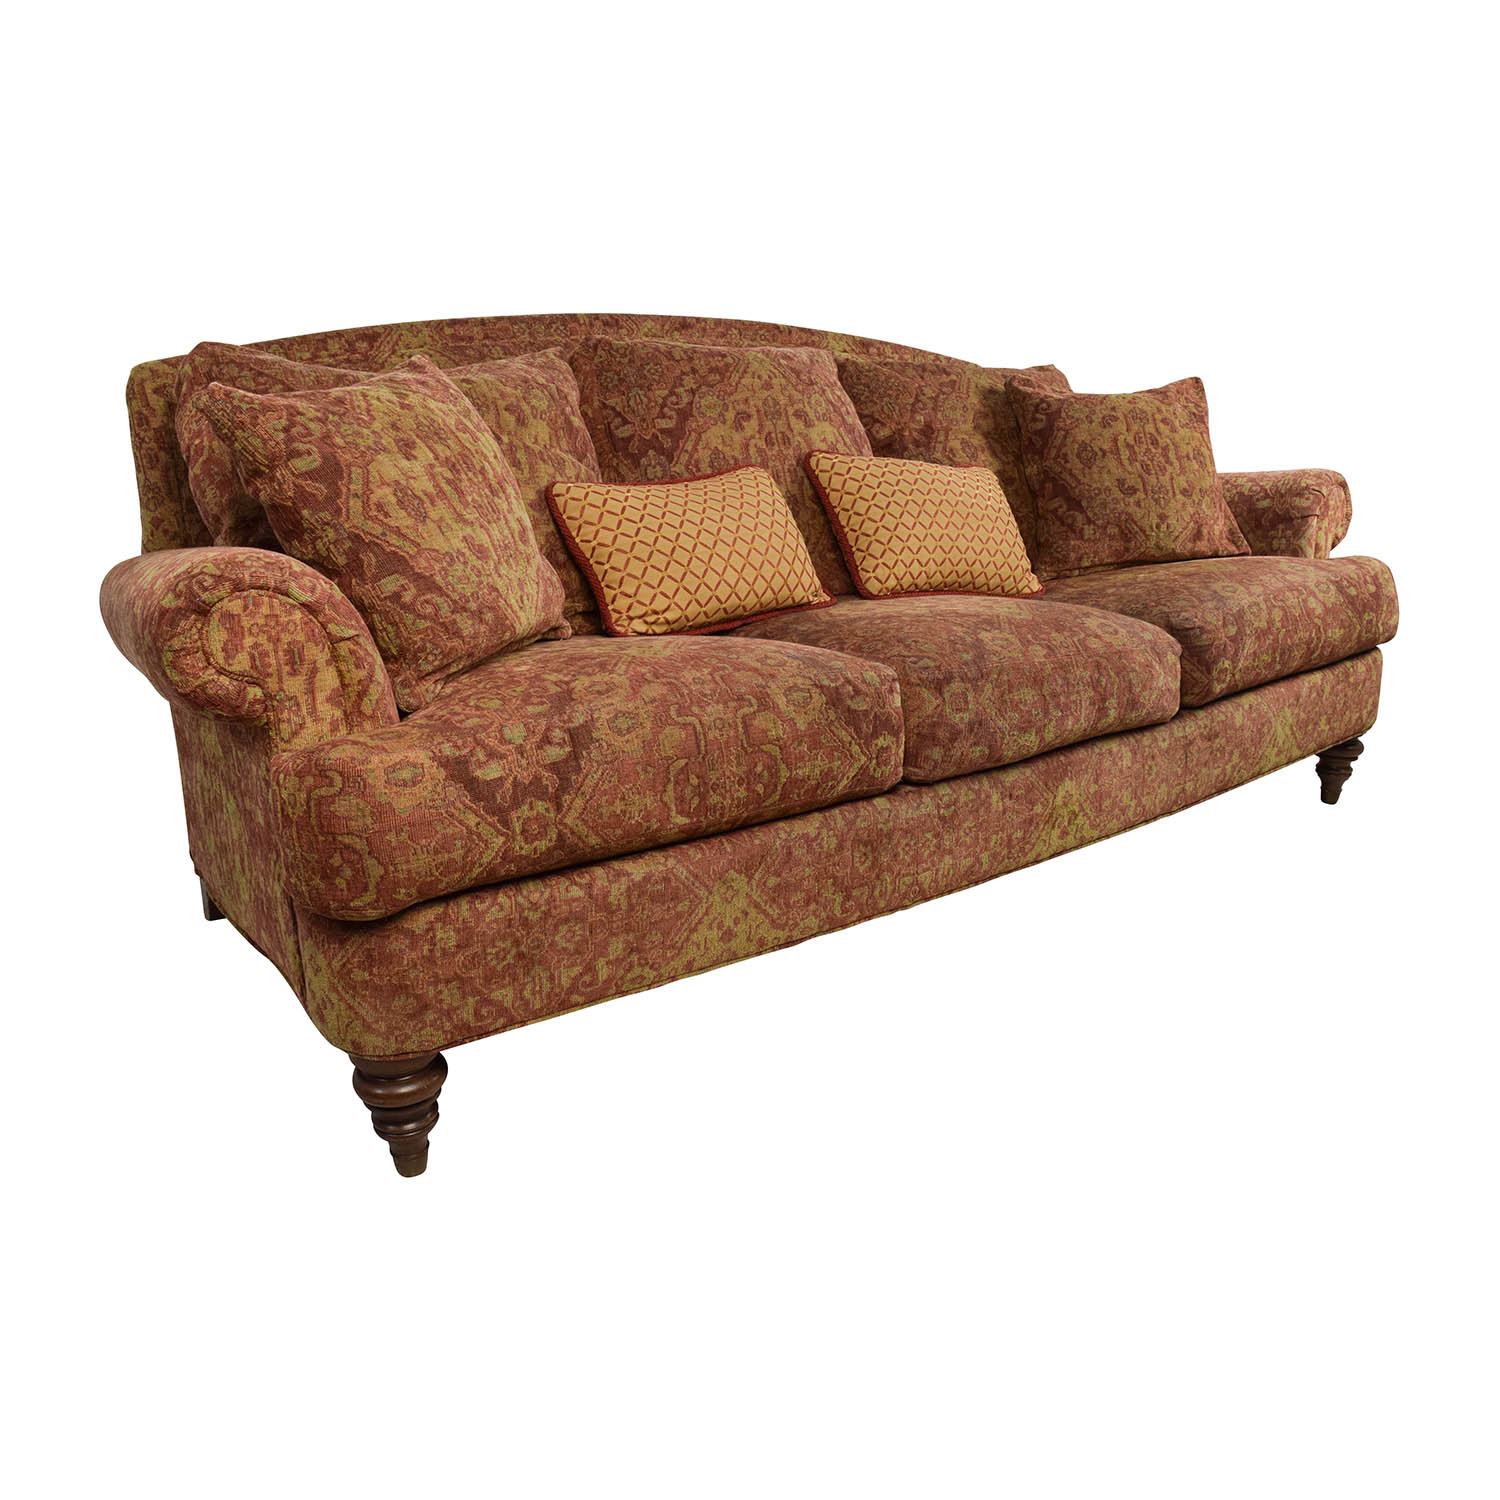 Ethan Allen Used Furniture >> 65% OFF - Ethan Allen Ethan Allen Paisley Cushioned Sofa ...